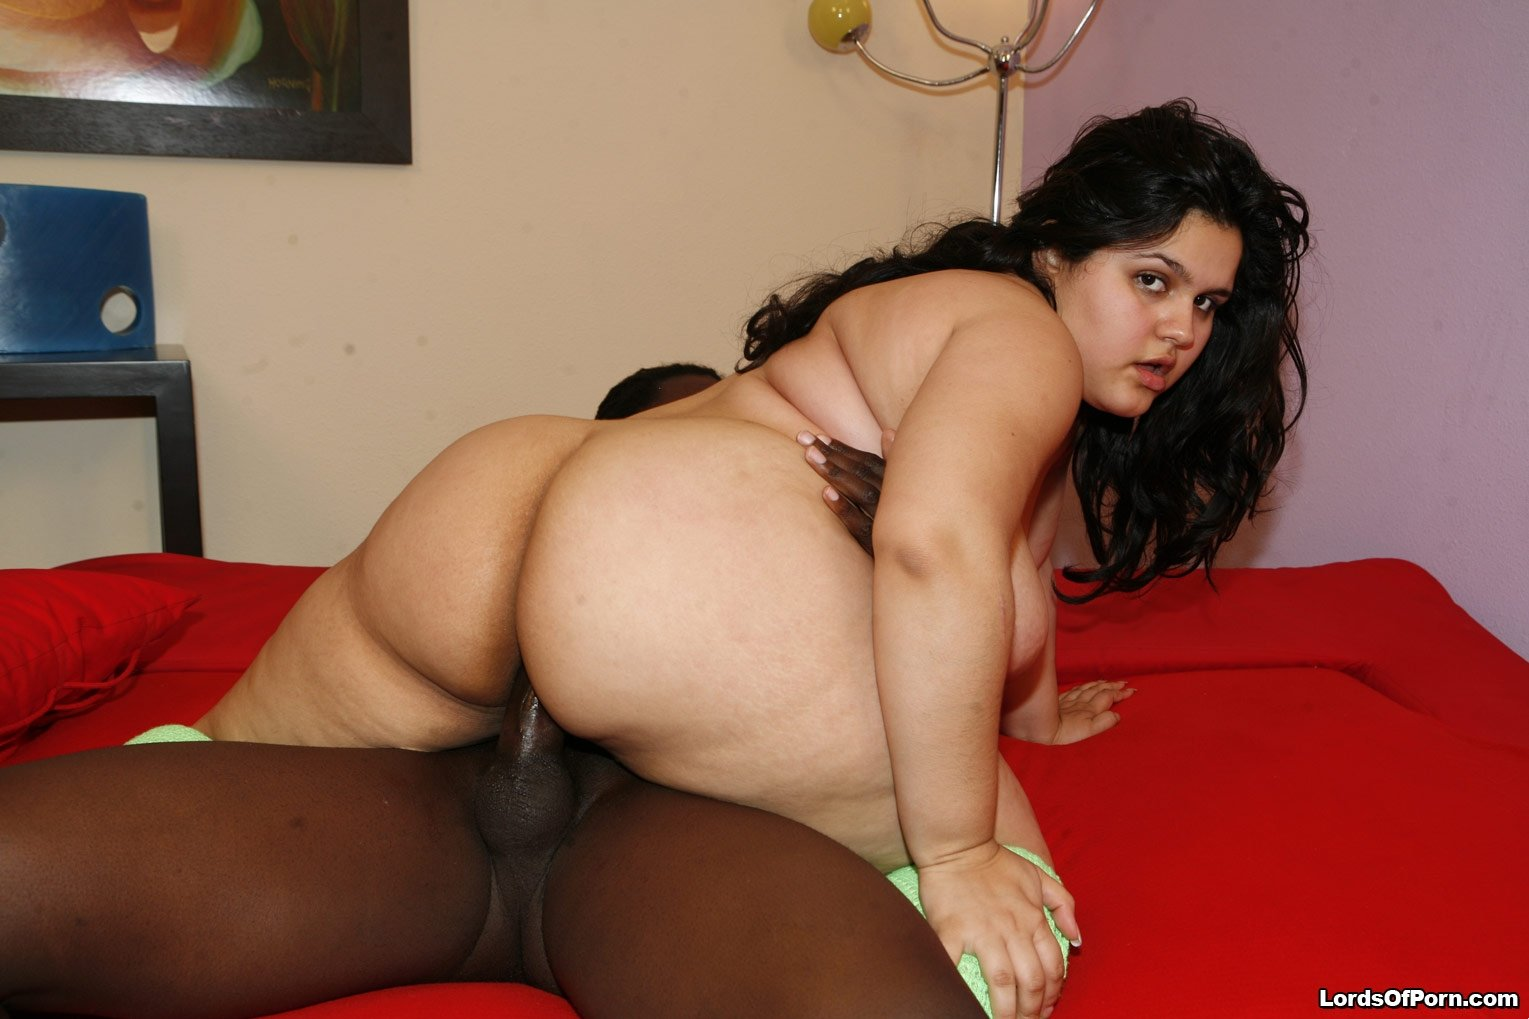 ginger lee interracial add photo